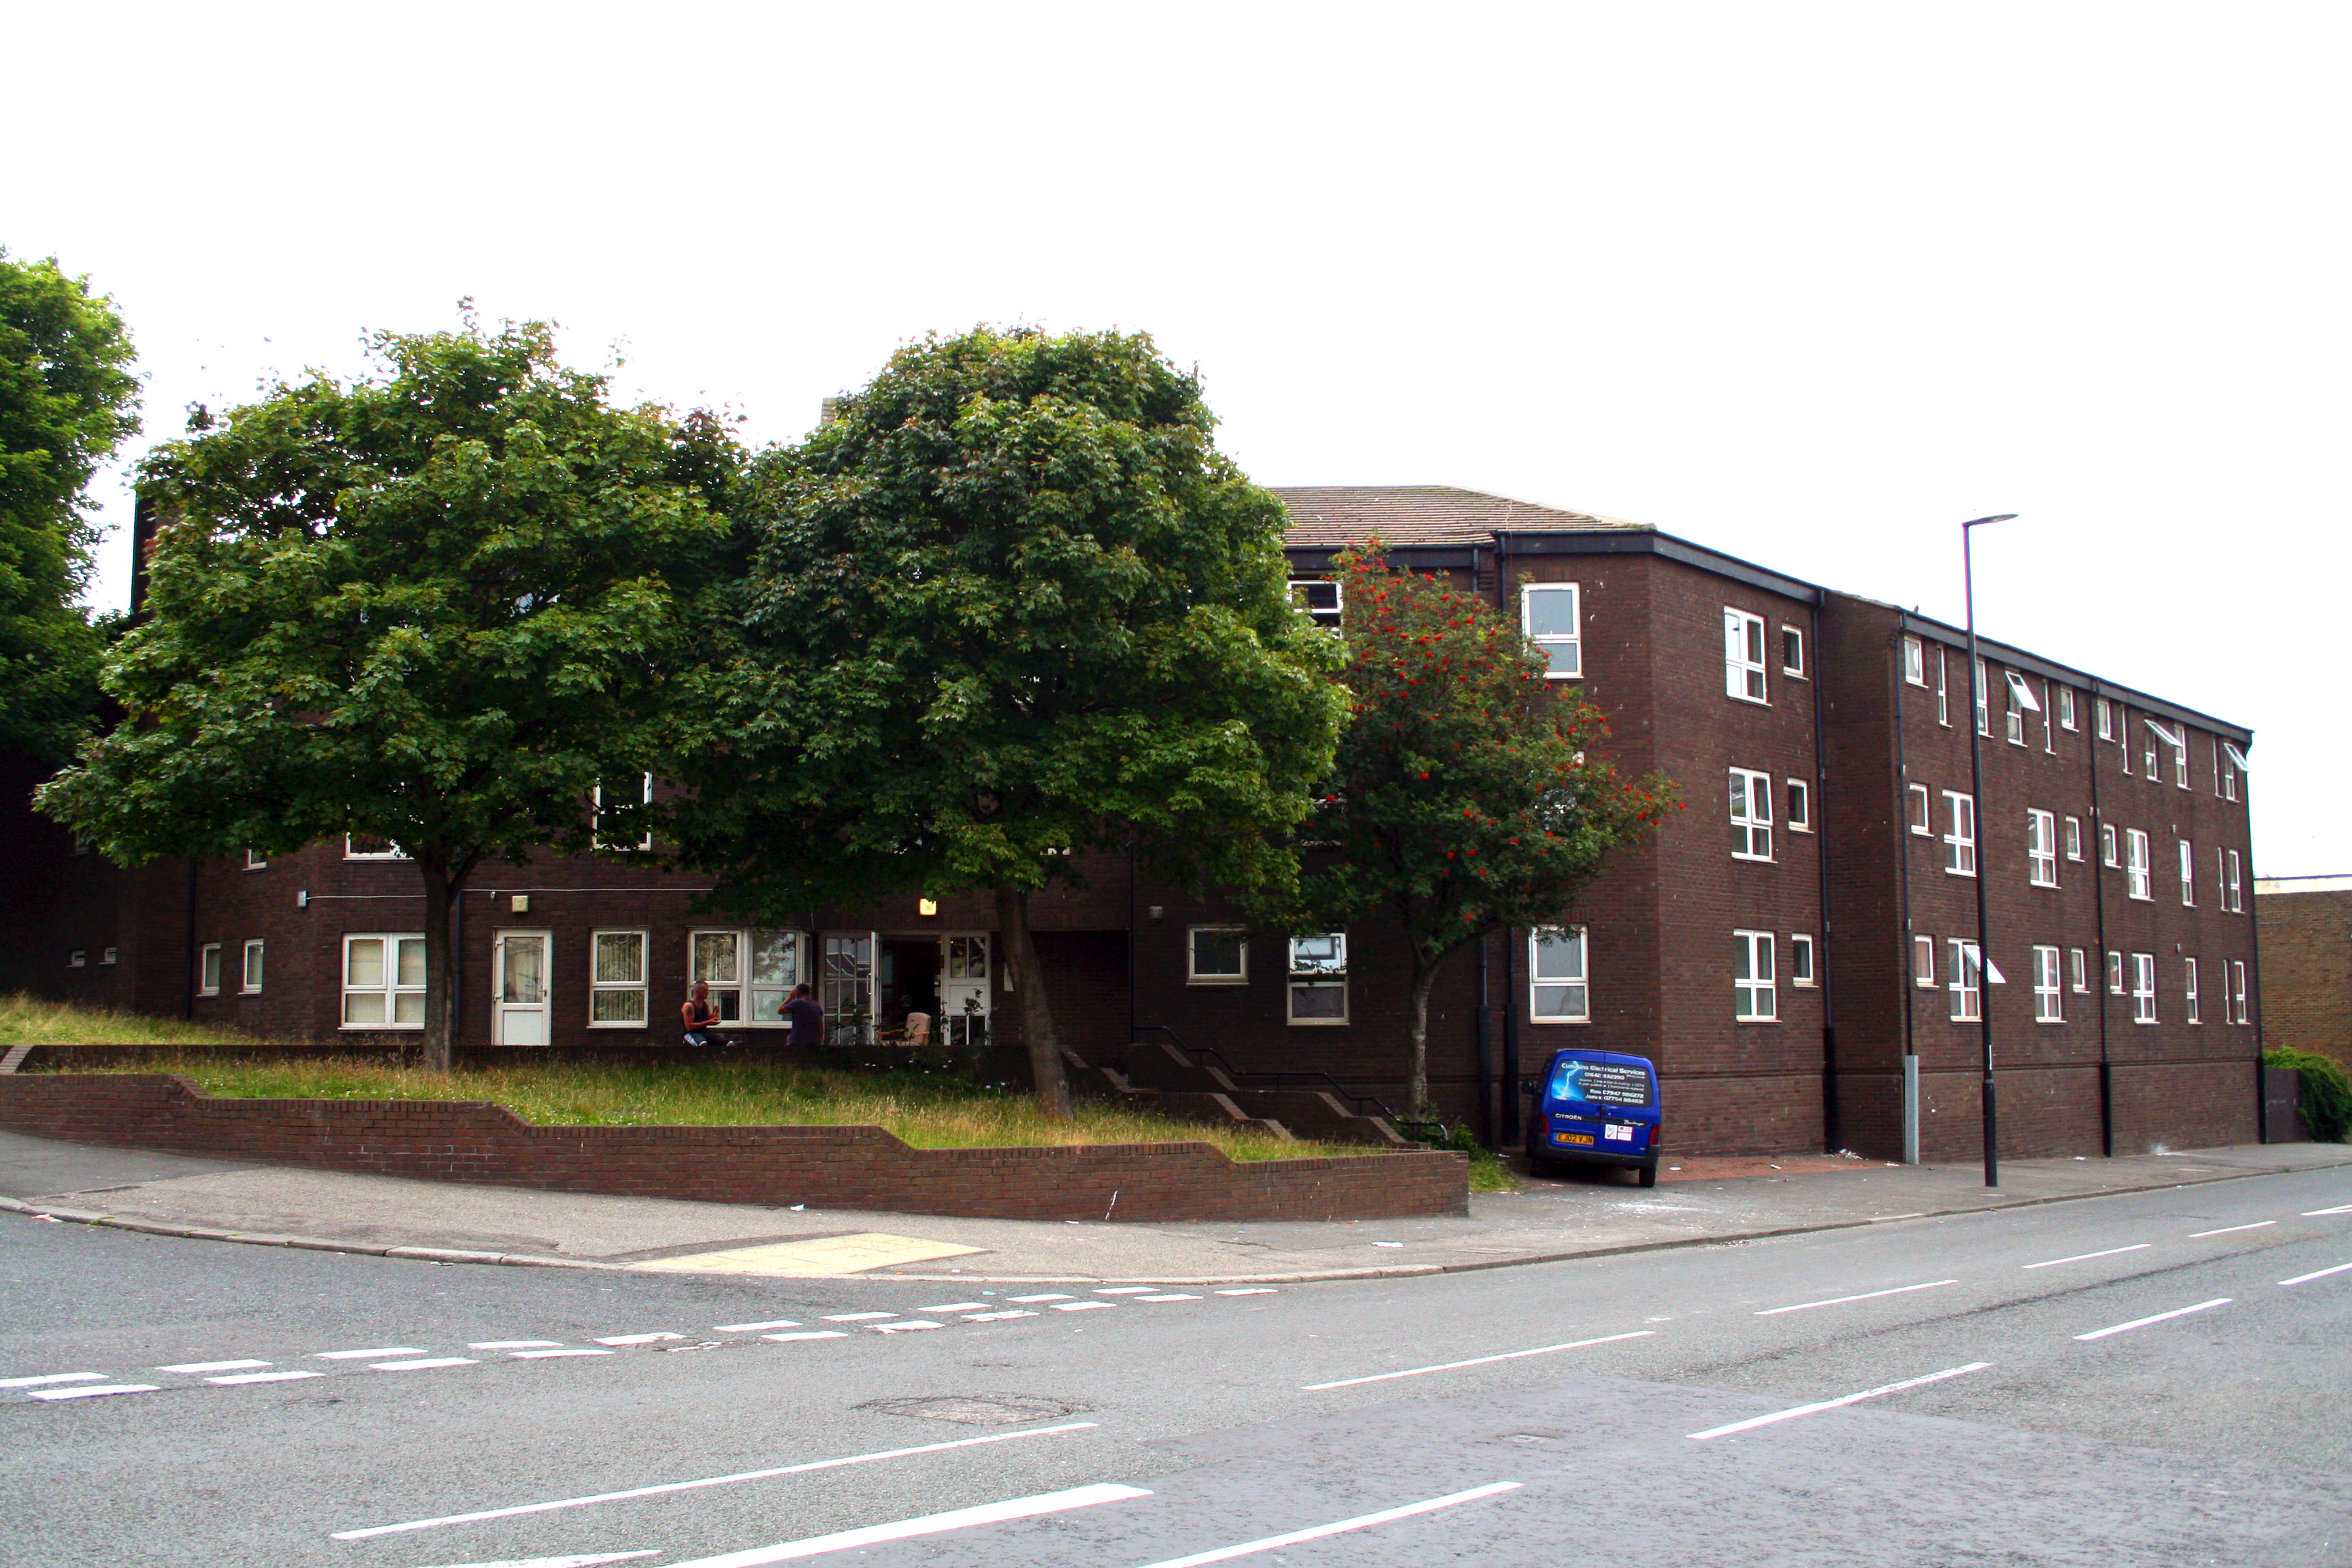 Home for Sale Let - Photo 01 Watts Moses House(Flat 33), High Street East Sunderland, SR1 2BX